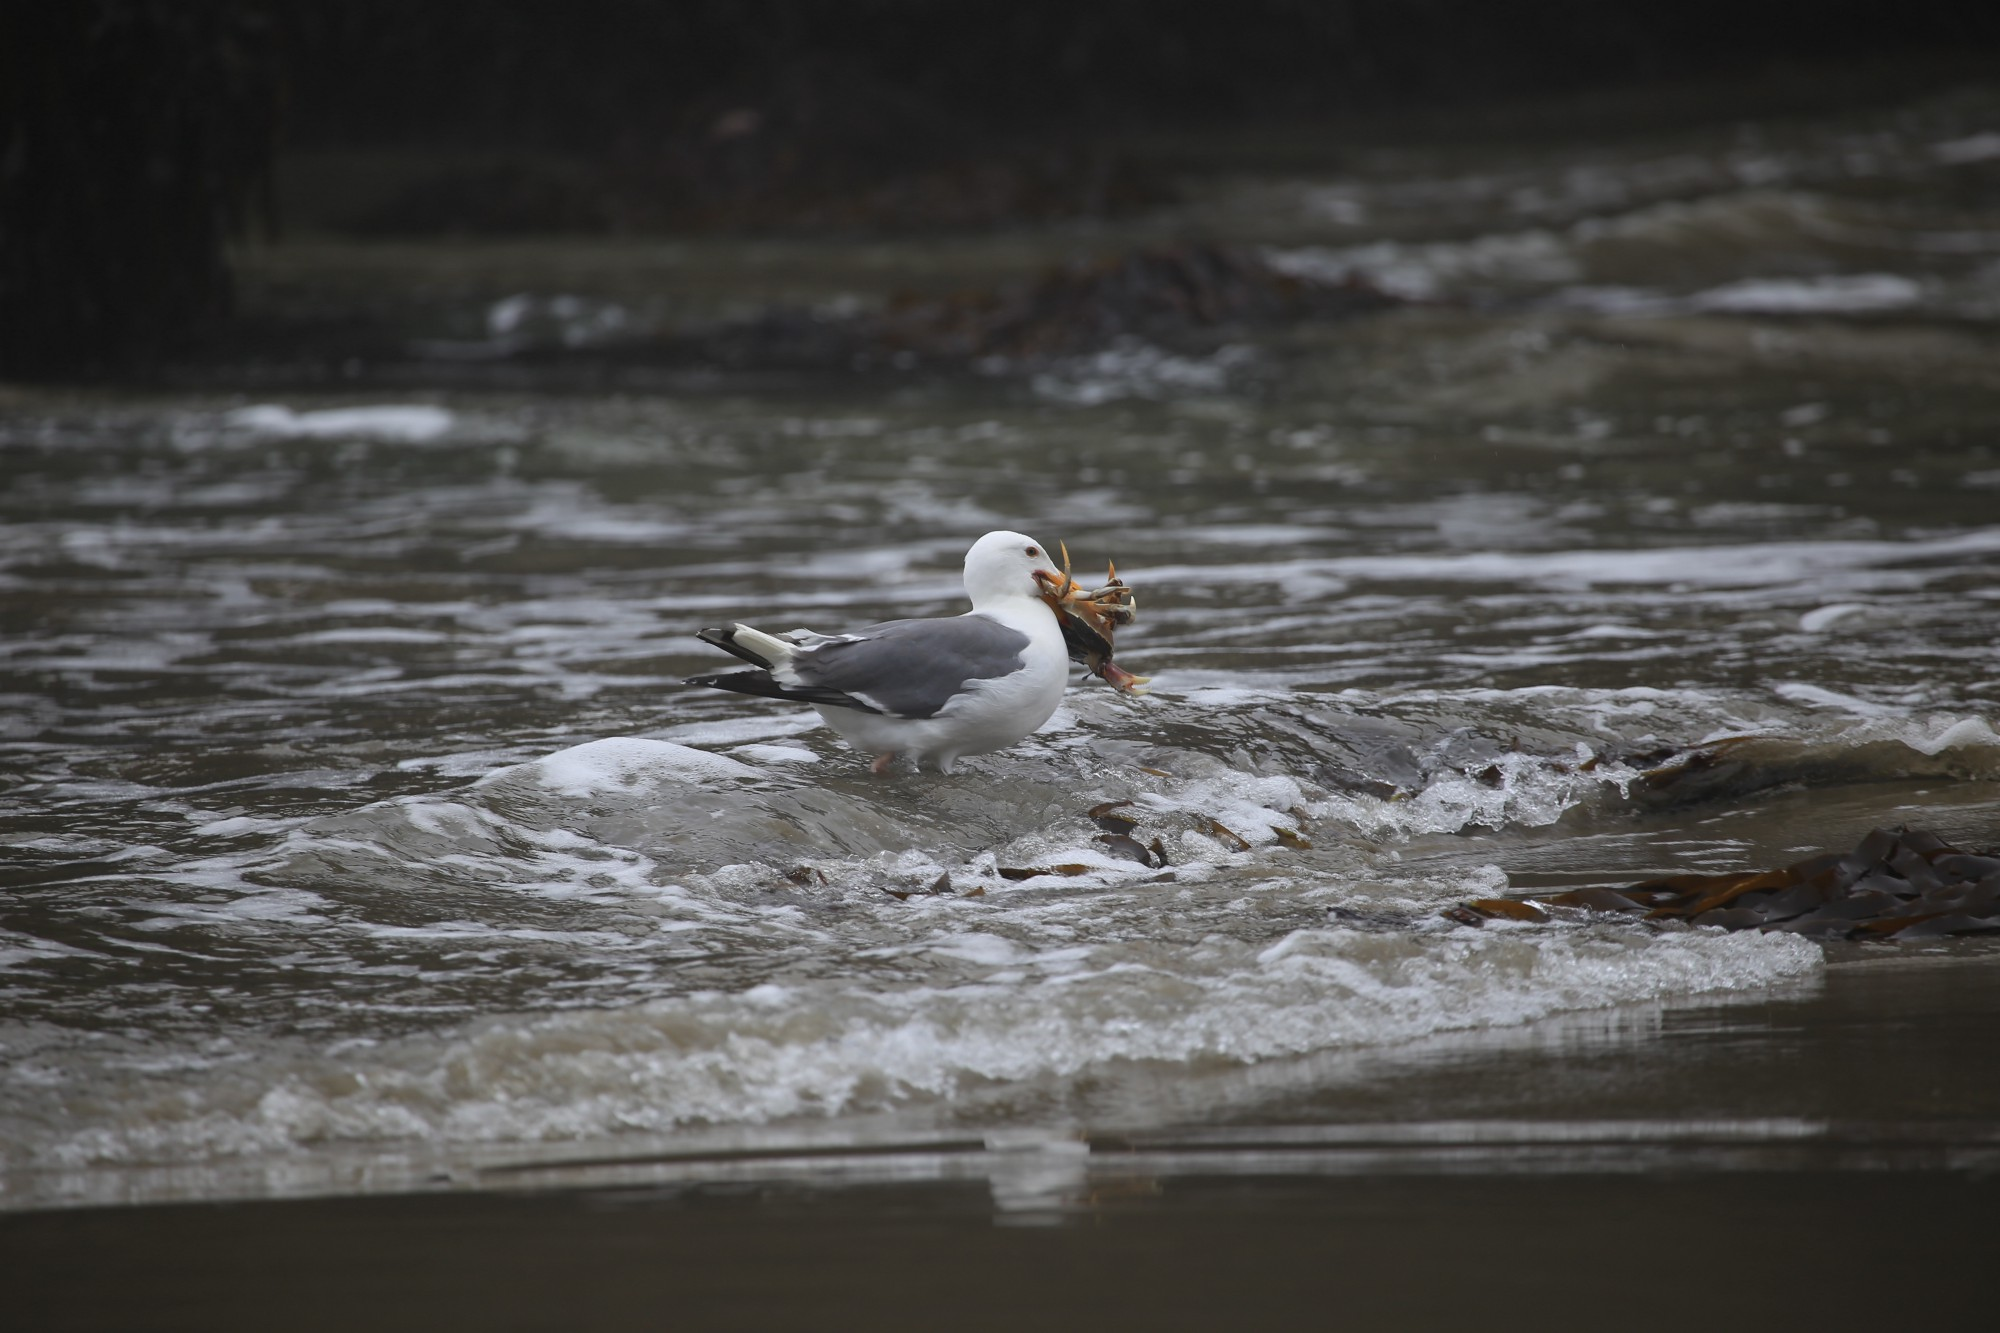 A Western gull (Larus occidentalis) captures a red rock crab (Cancer productus)during low tide.